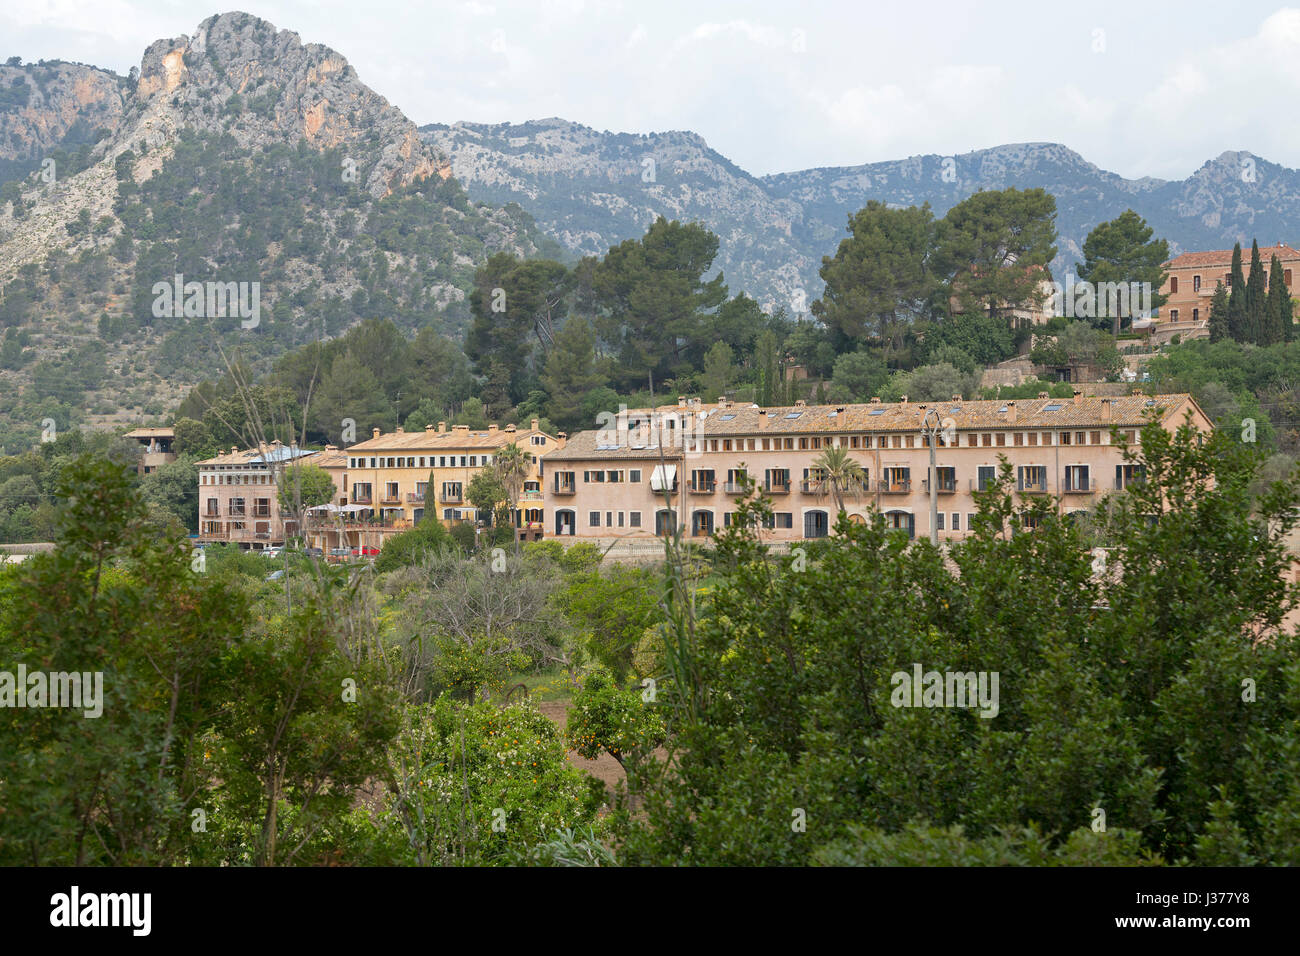 row of houses in Bunyola, Mallorca, Spain - Stock Image